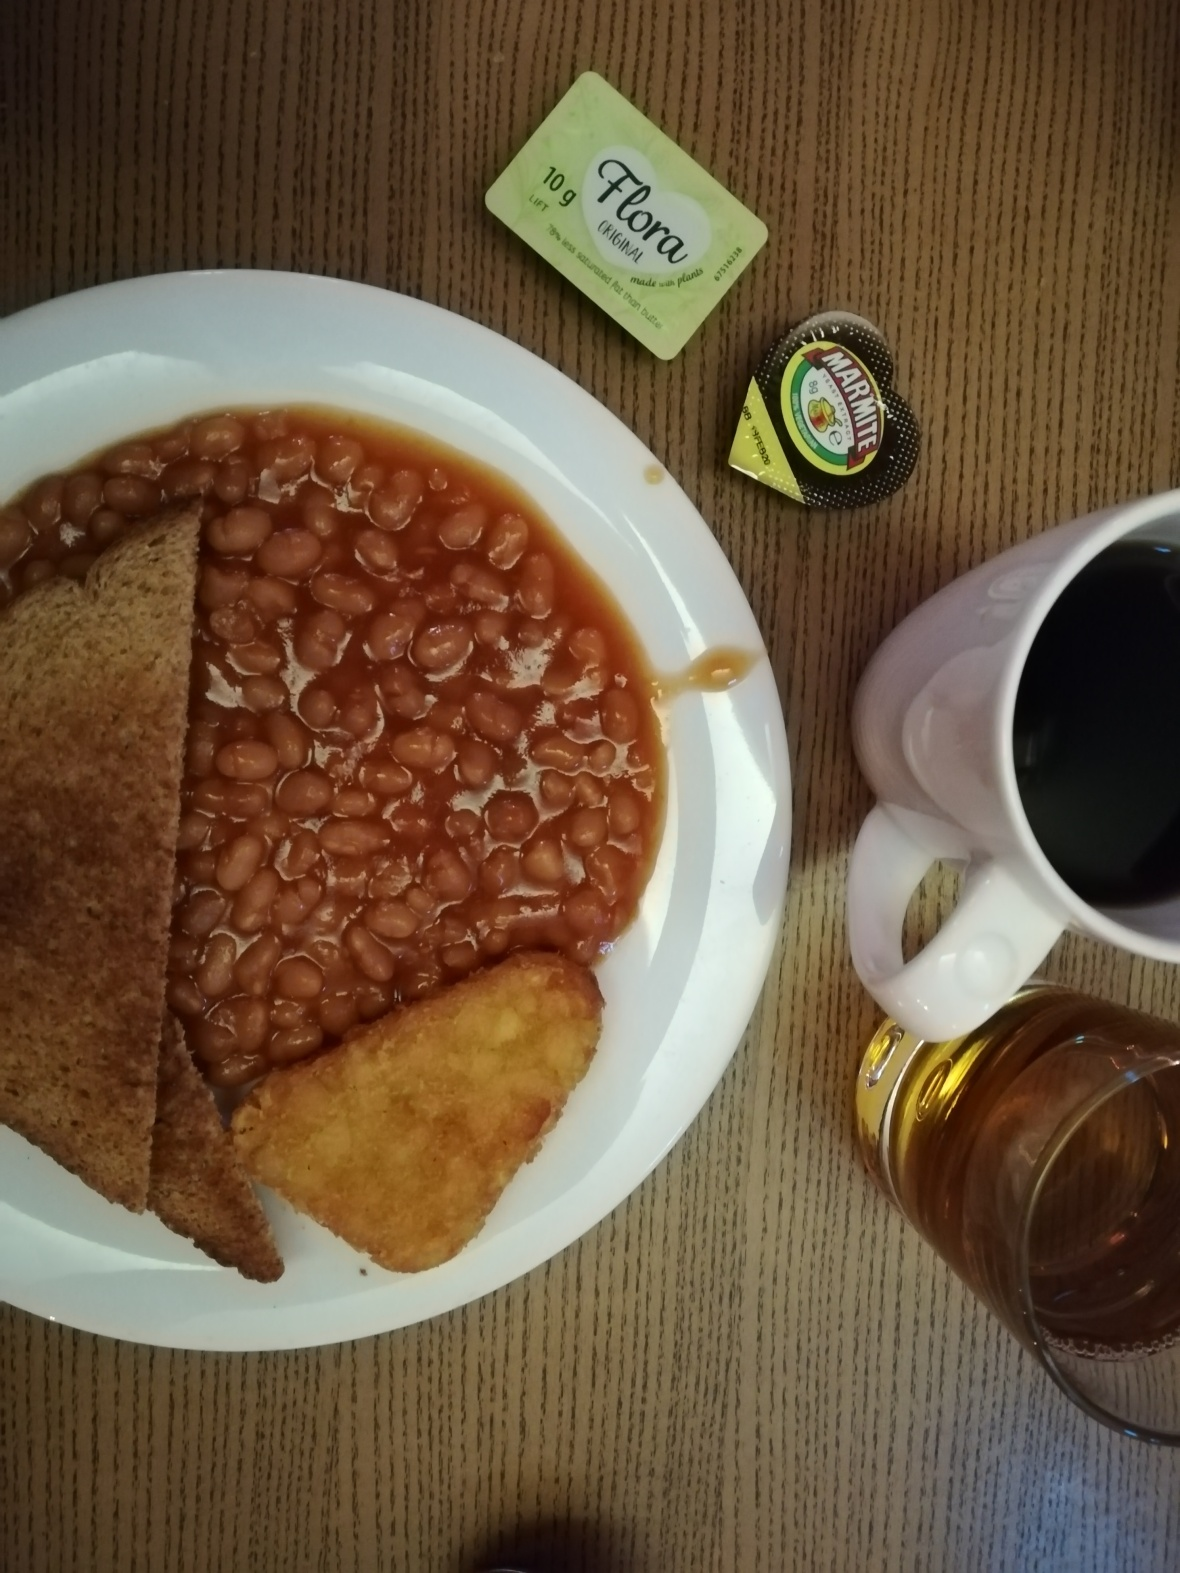 American coffee, apple juice, Marmite❤️, beans, bread, potatoes